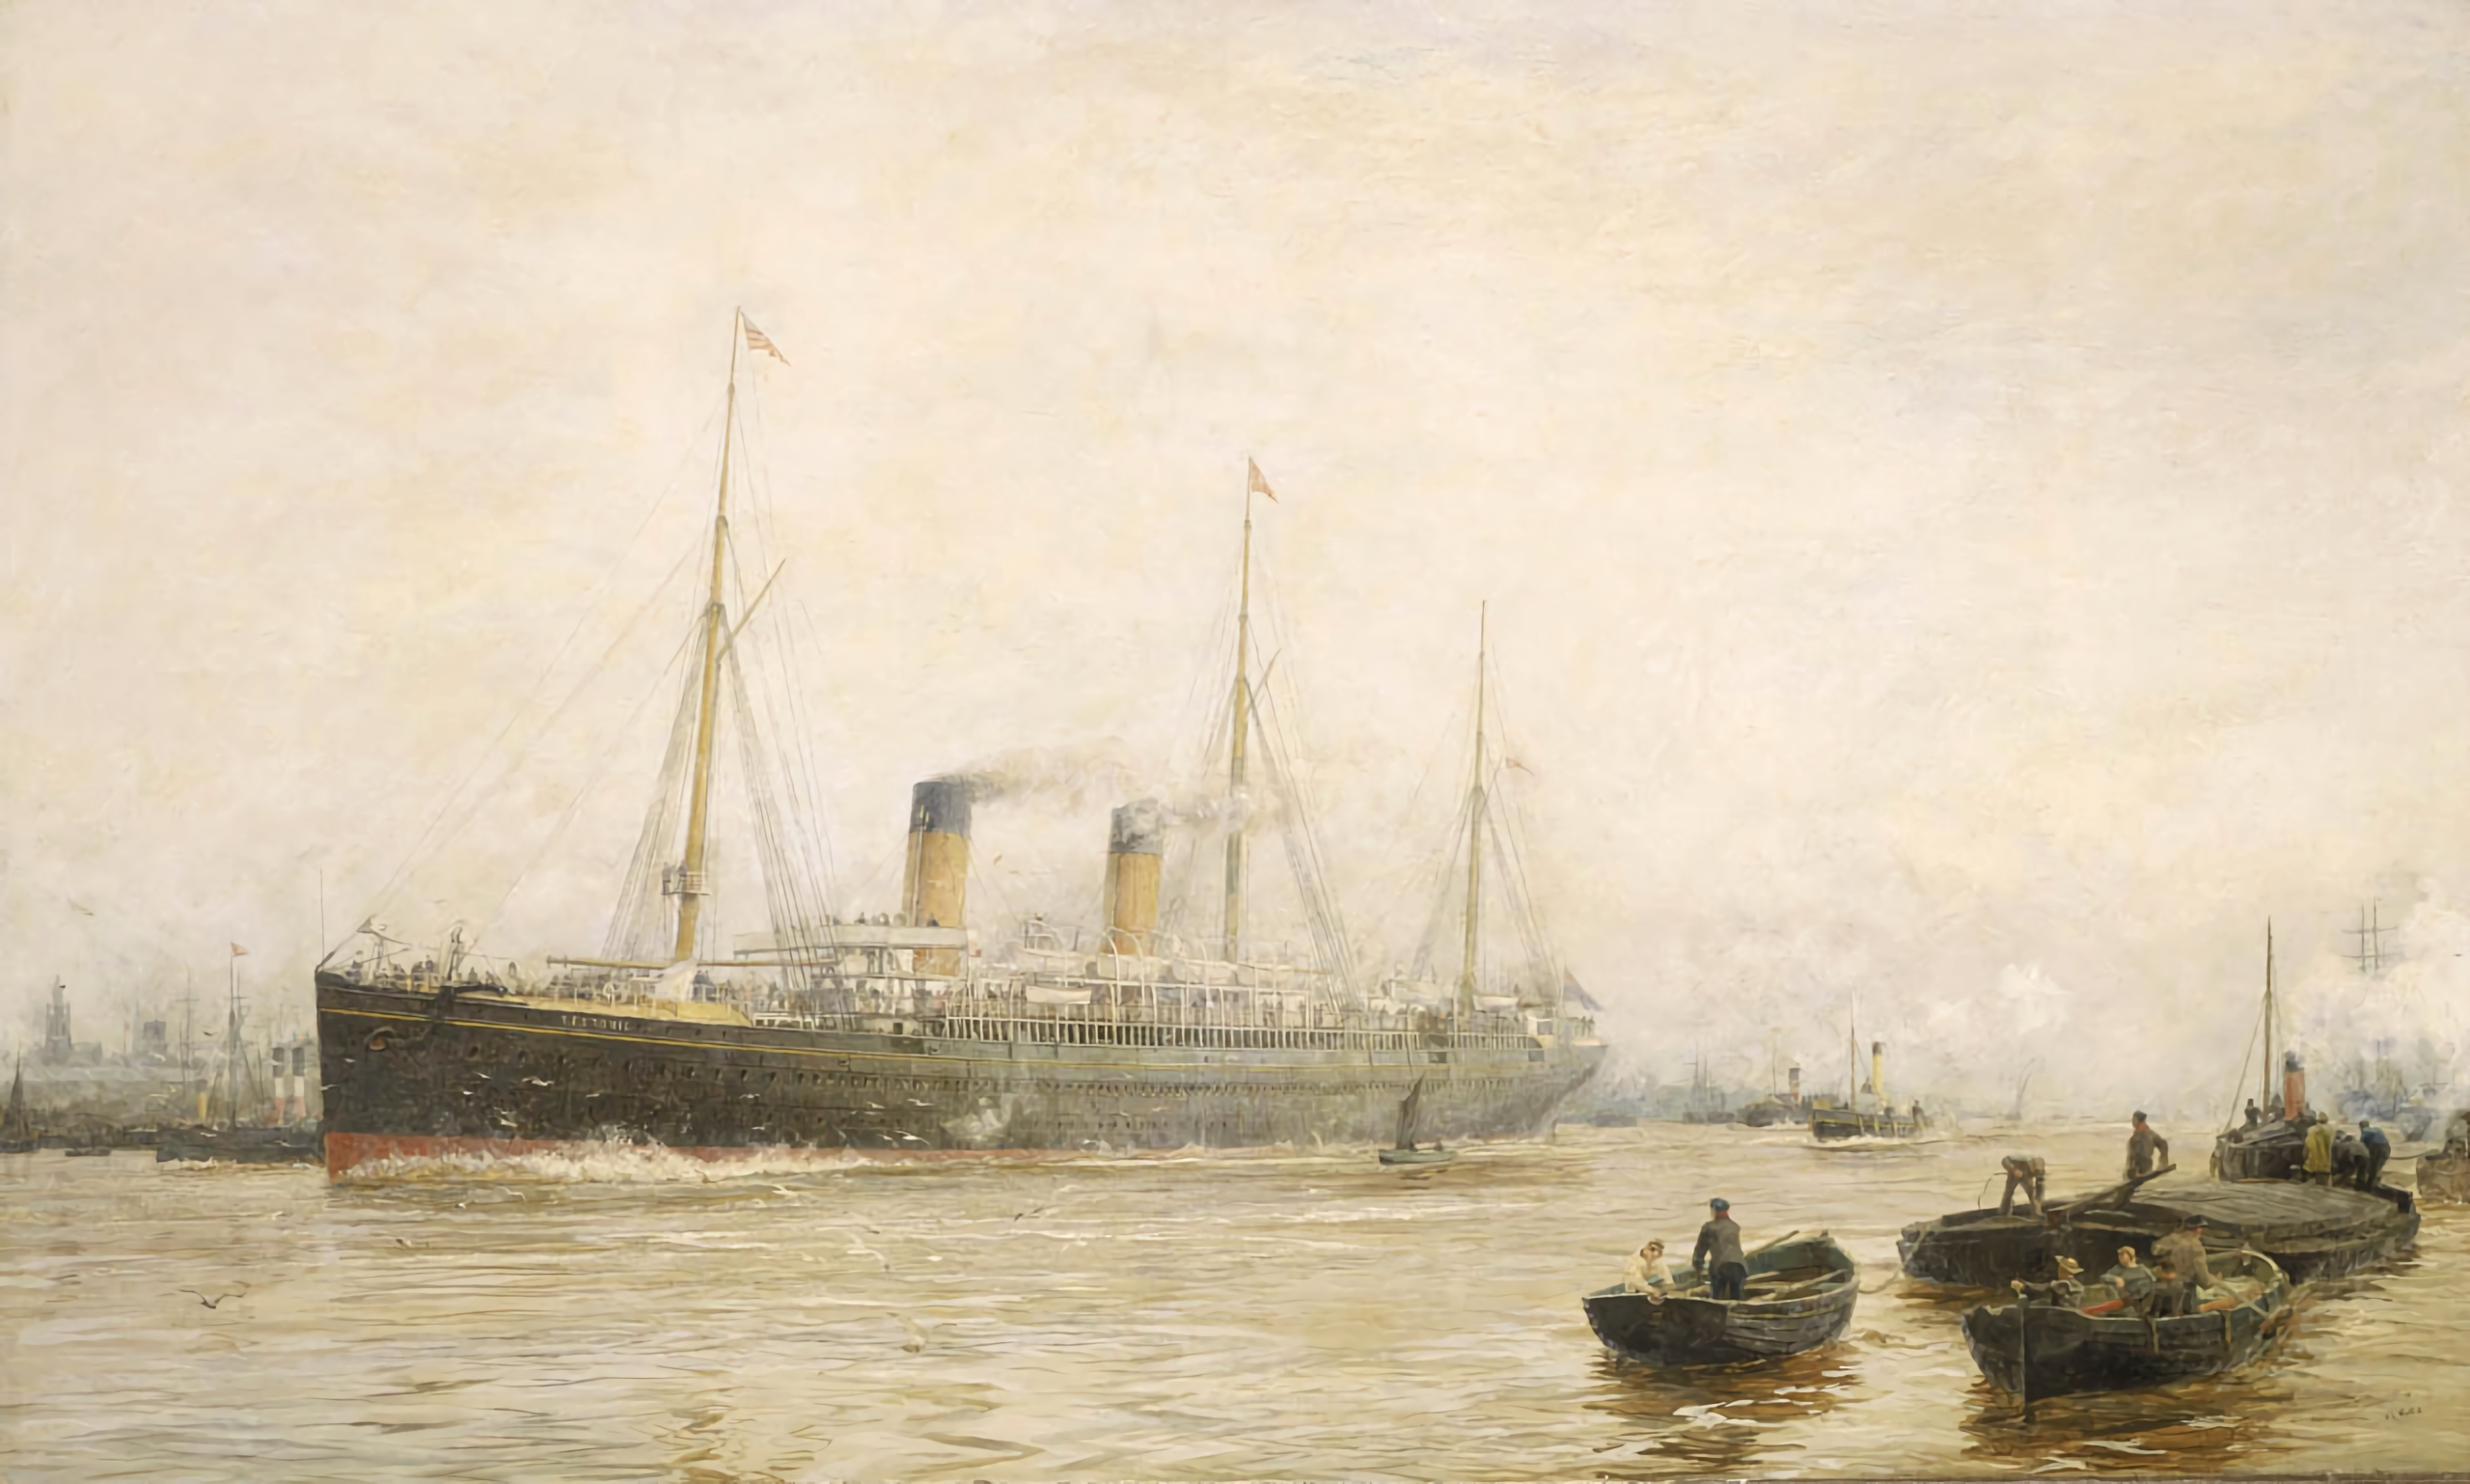 http://upload.wikimedia.org/wikipedia/commons/9/9b/Teutonic_leaving_Liverpool.jpg